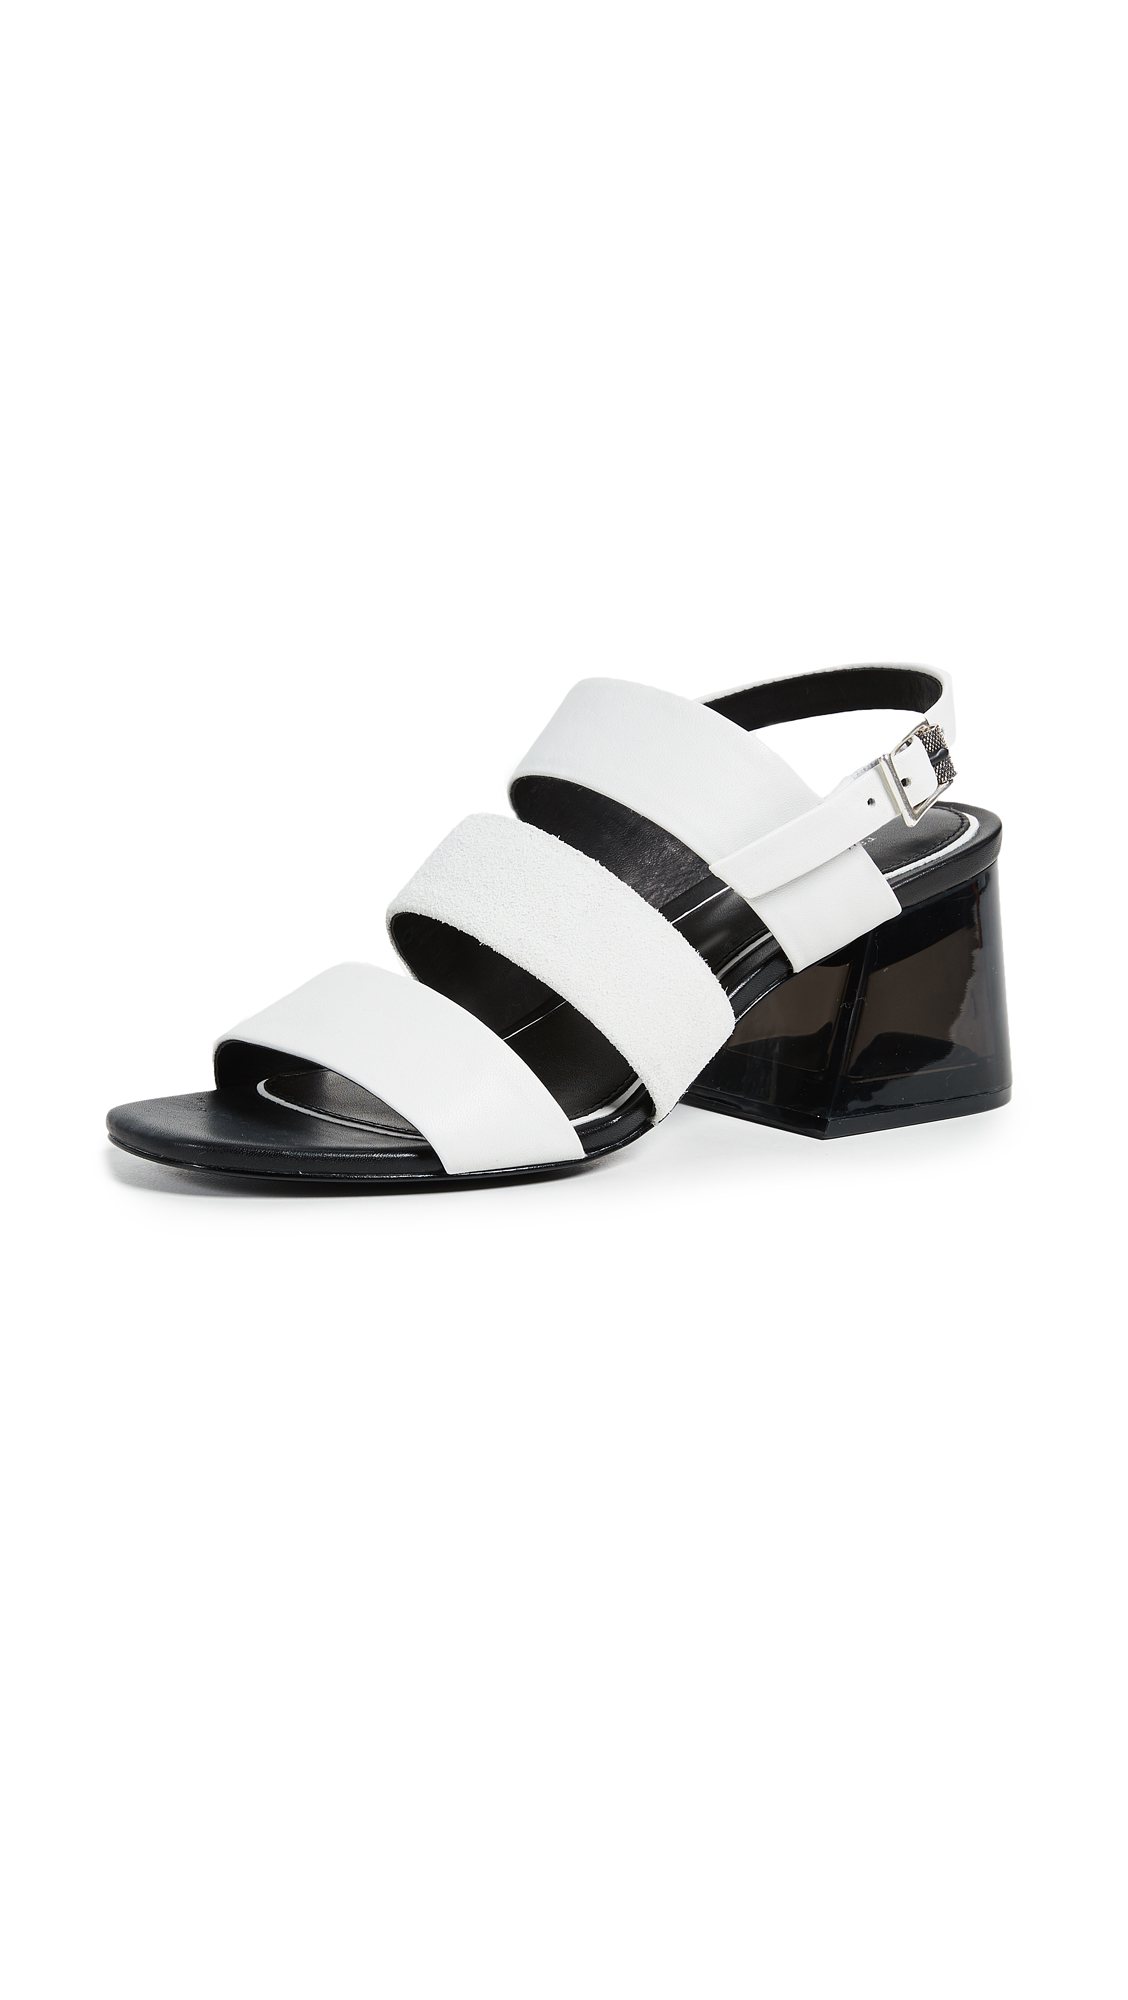 Rag & Bone Reese Sandals - White